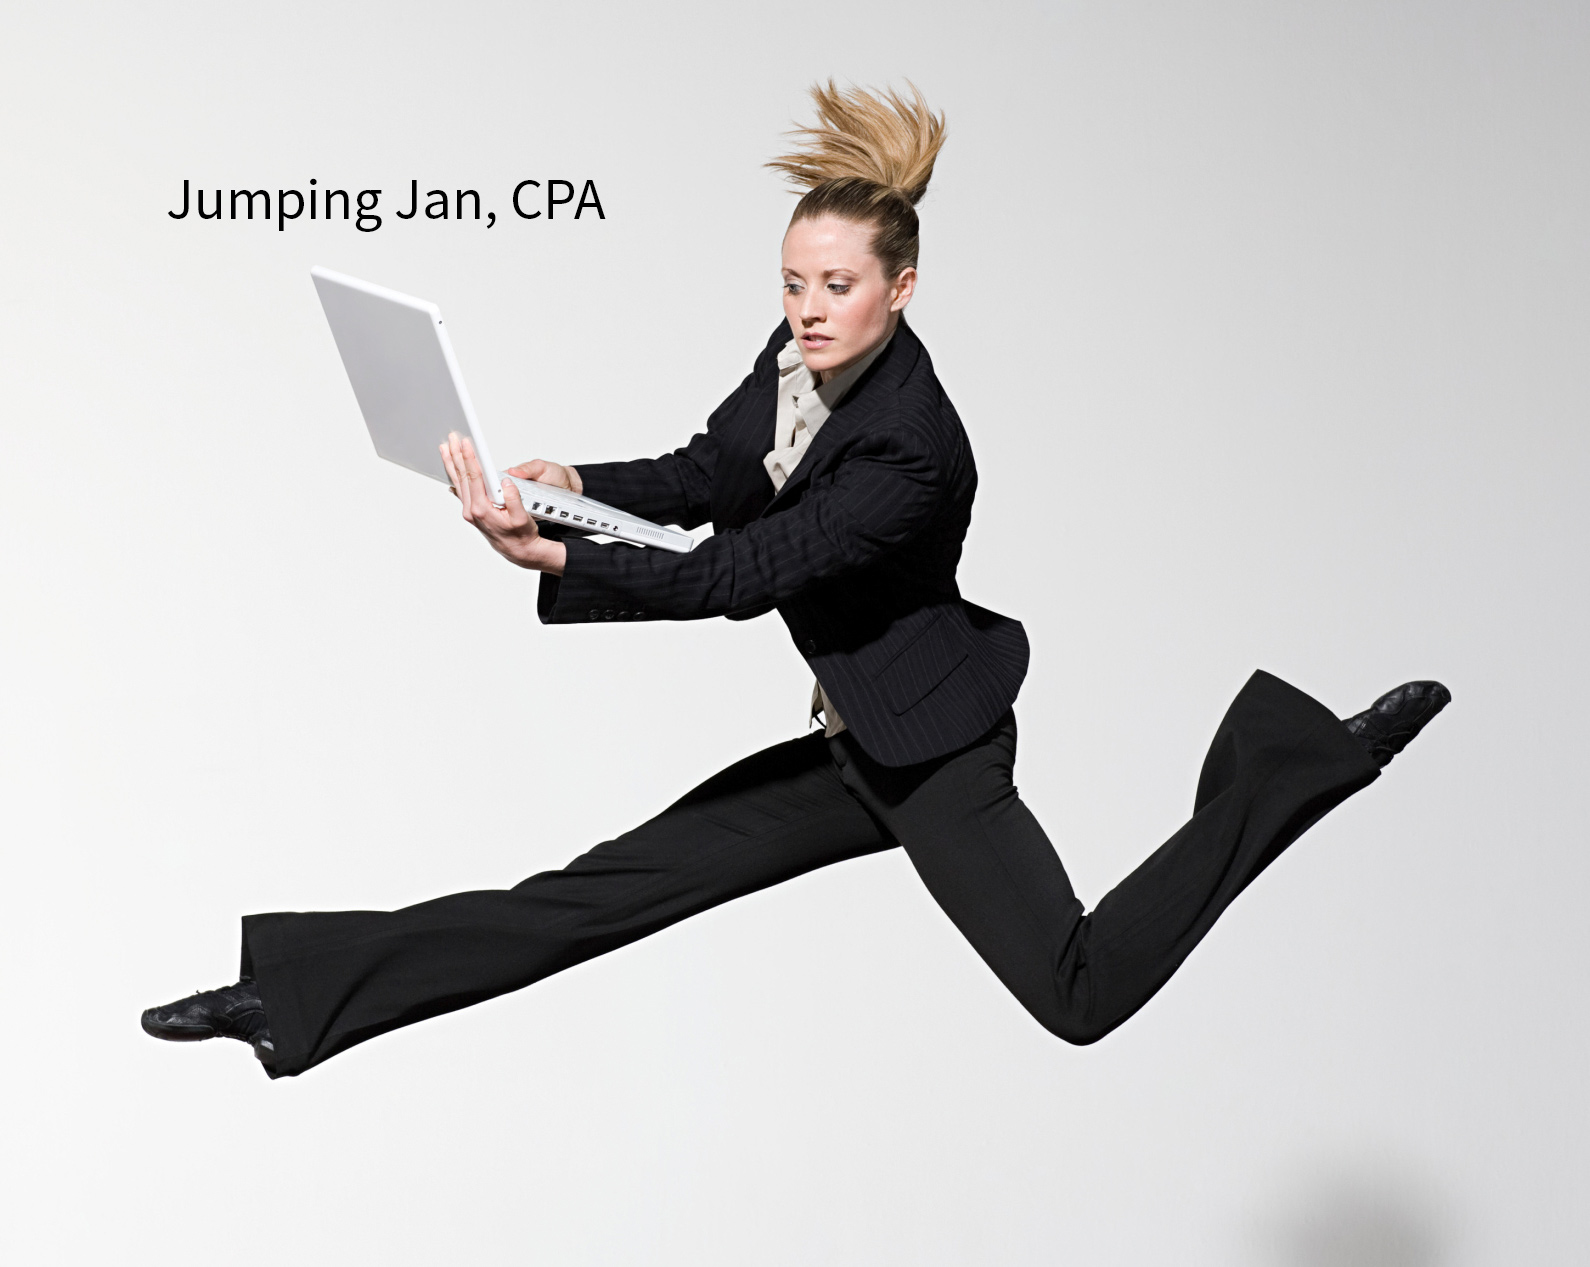 Jumping Jan GettyImages-79320215 rgb web.png